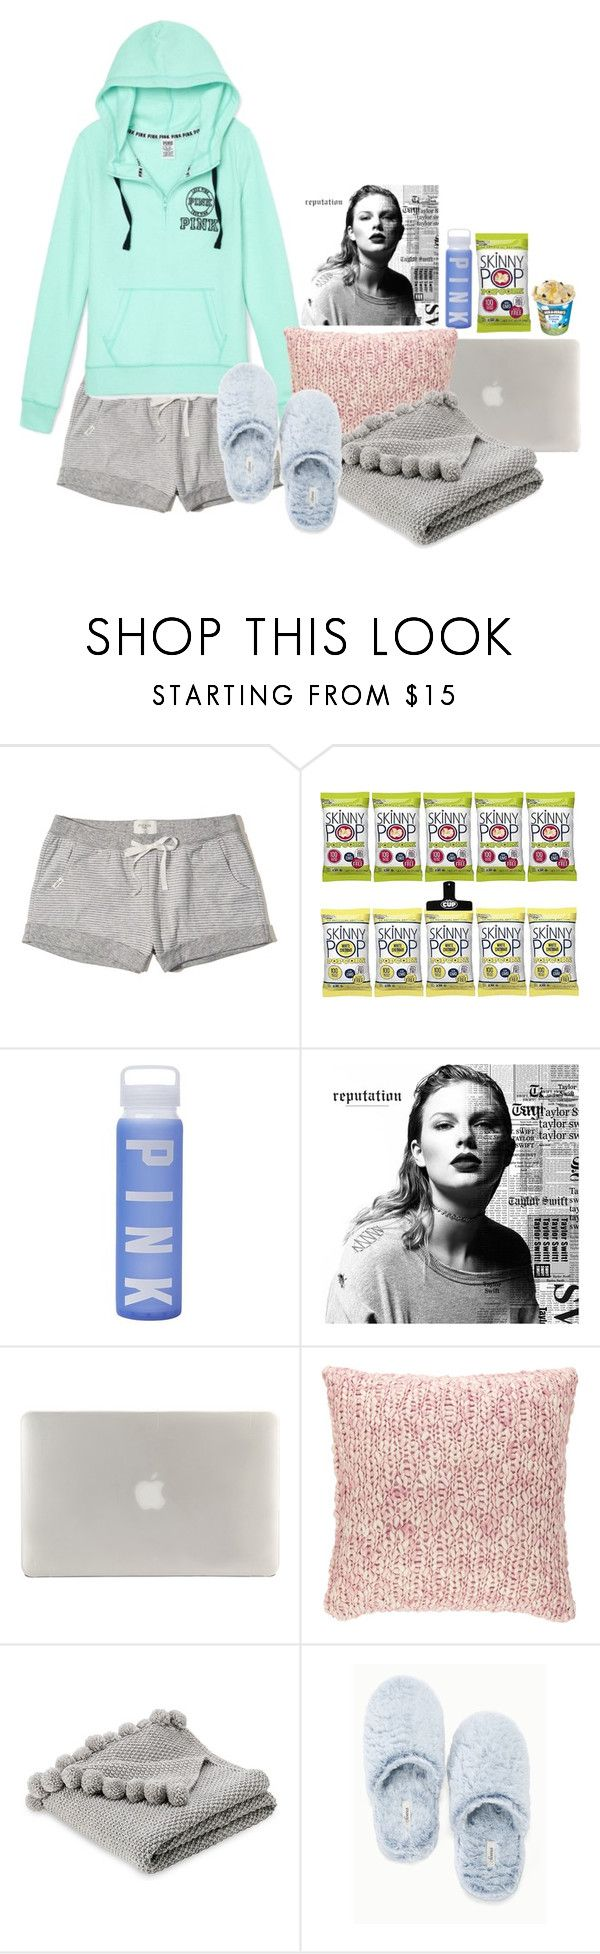 """I just bought Reputation!"" by preppypuffpuff on Polyvore featuring Hollister Co., Victoria's Secret, Tucano, Pine Cone Hill and Soma"